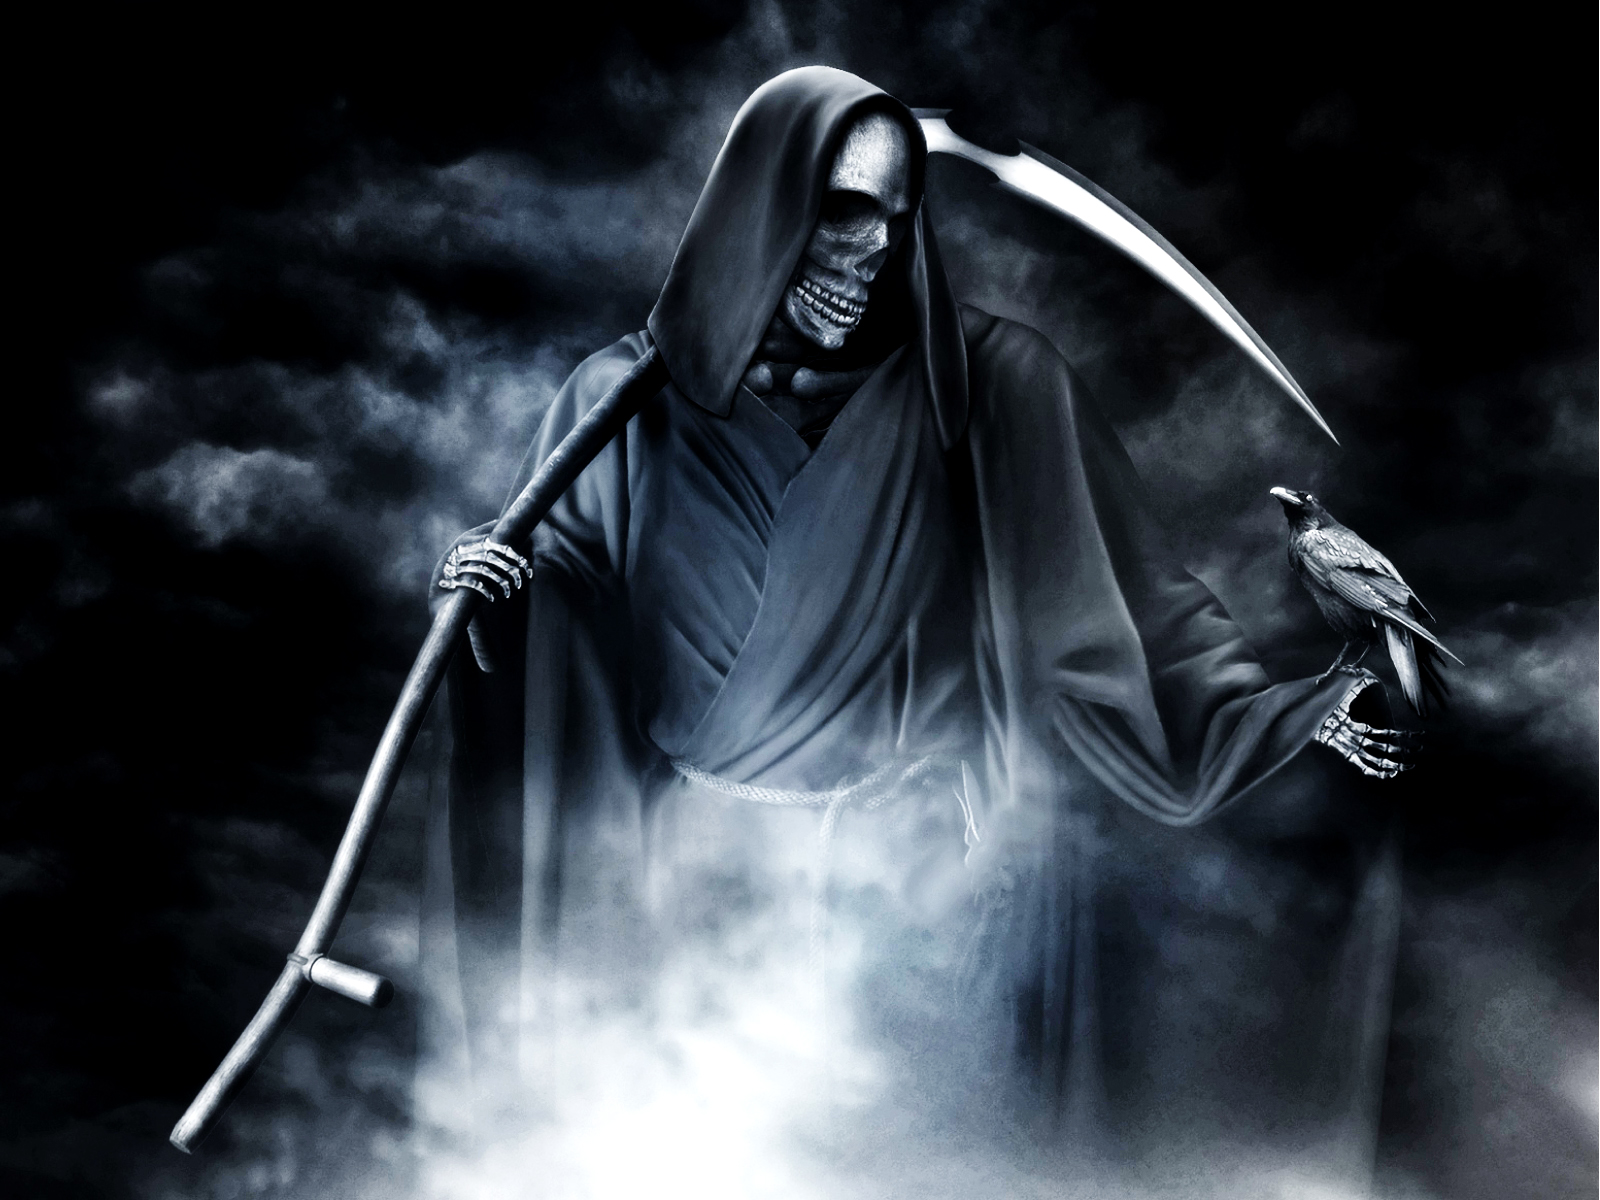 Grim Reaper HD Wallpapers| HD Wallpapers ,Backgrounds ...